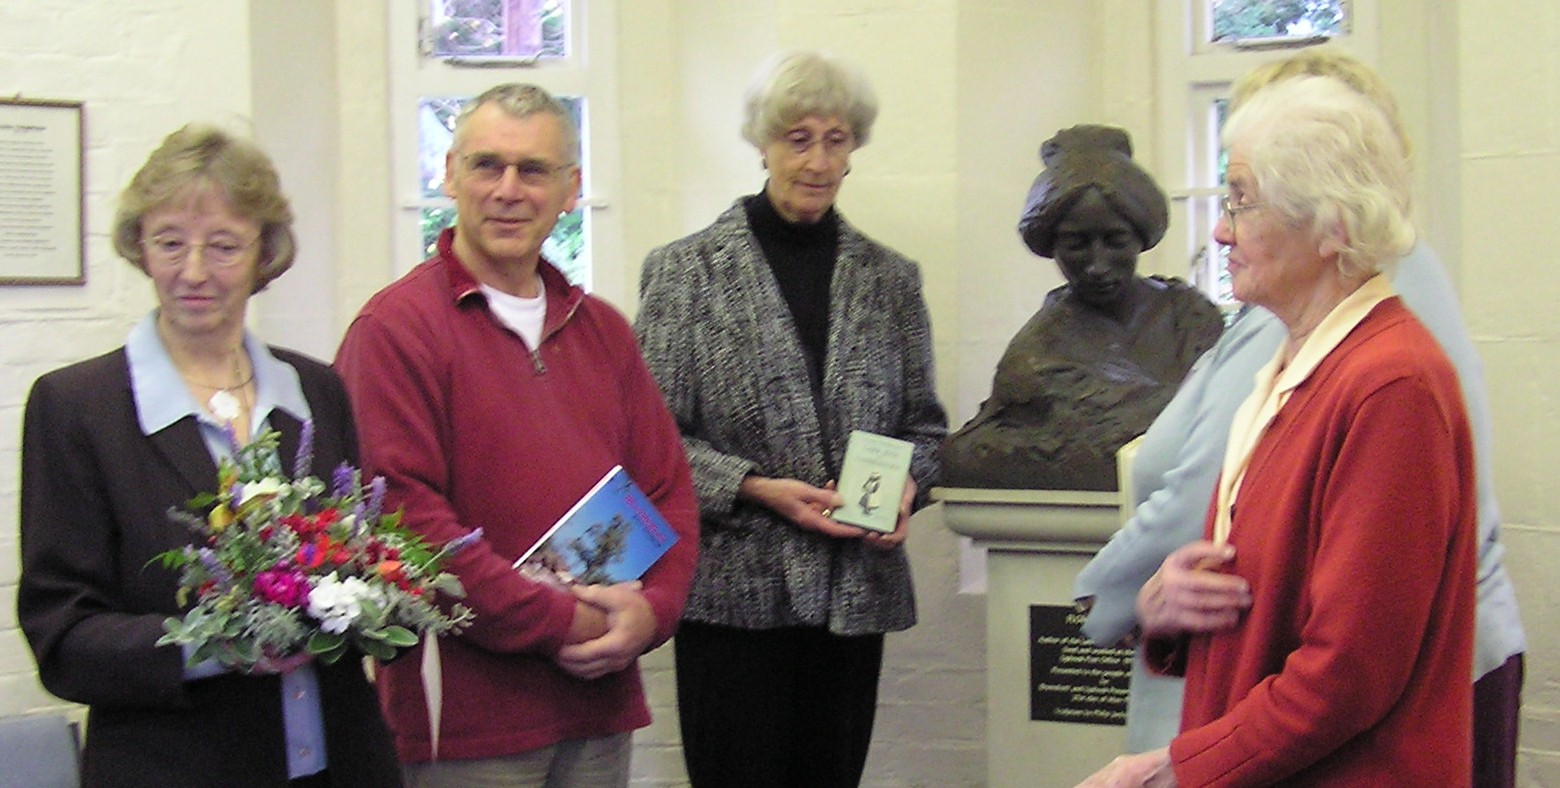 Celebrating Flora's 130th birthday in Liphook library